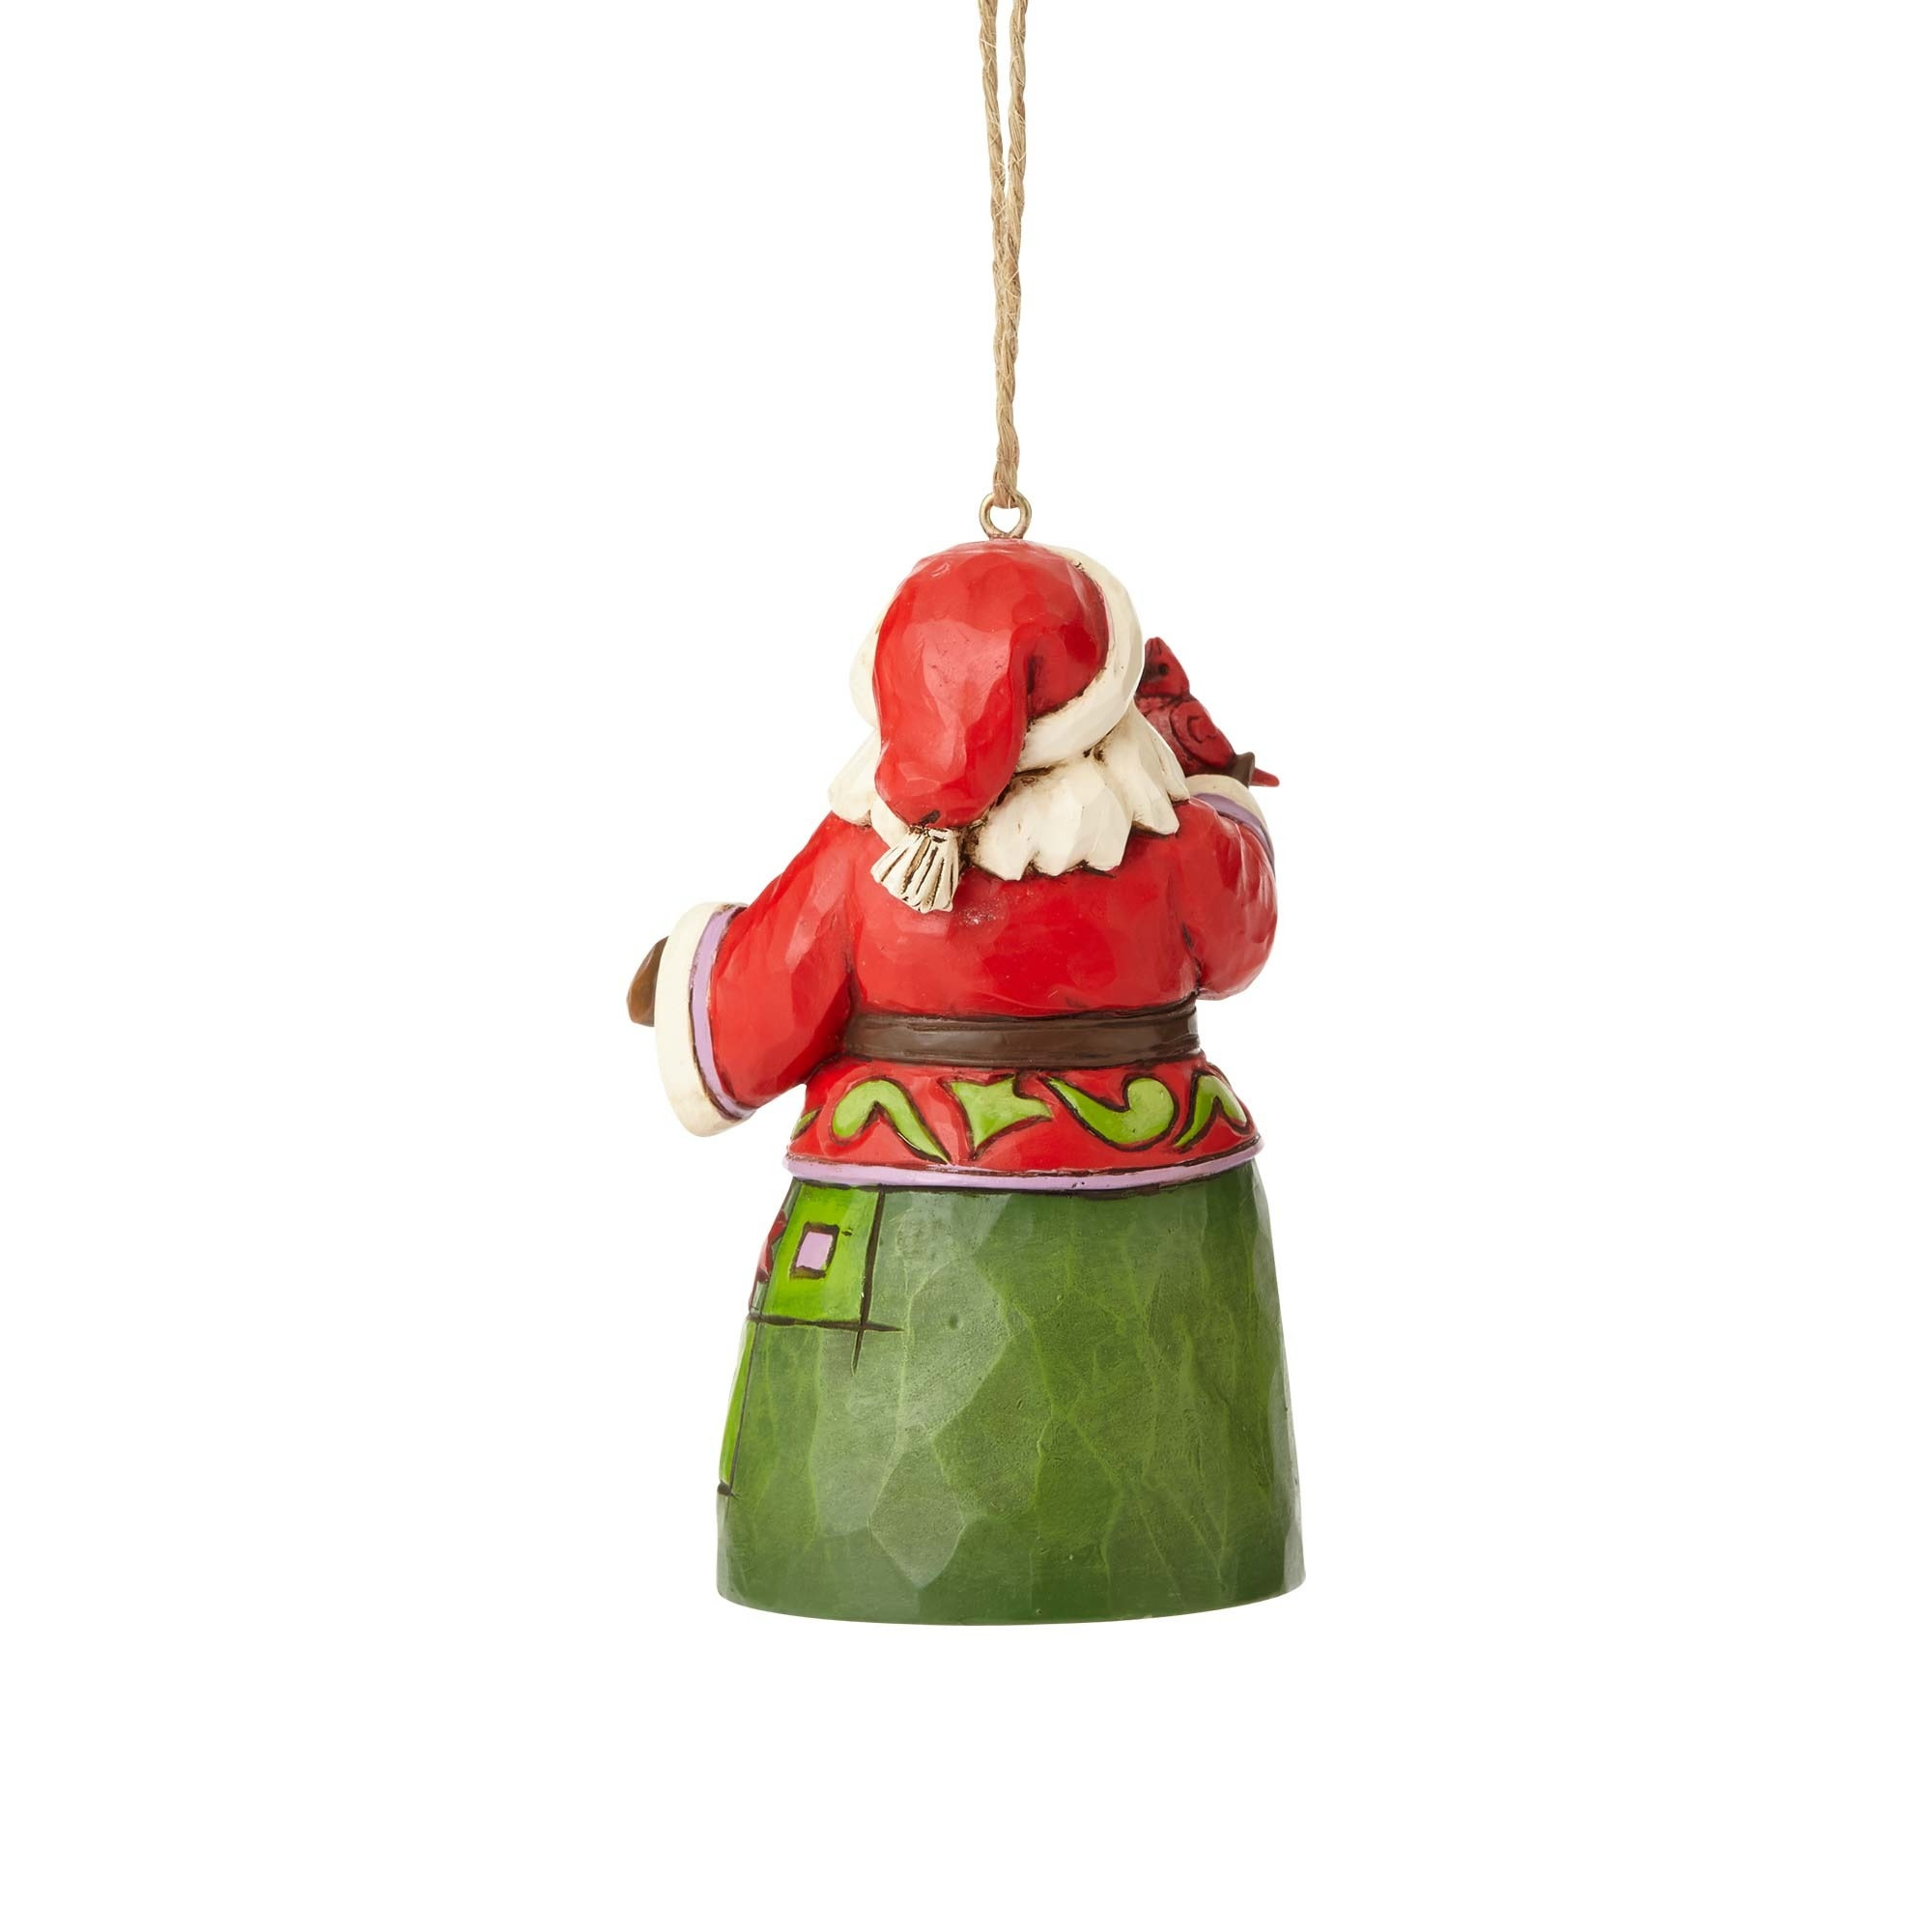 Jim Shore Mini Santa with Cardinal Ornament